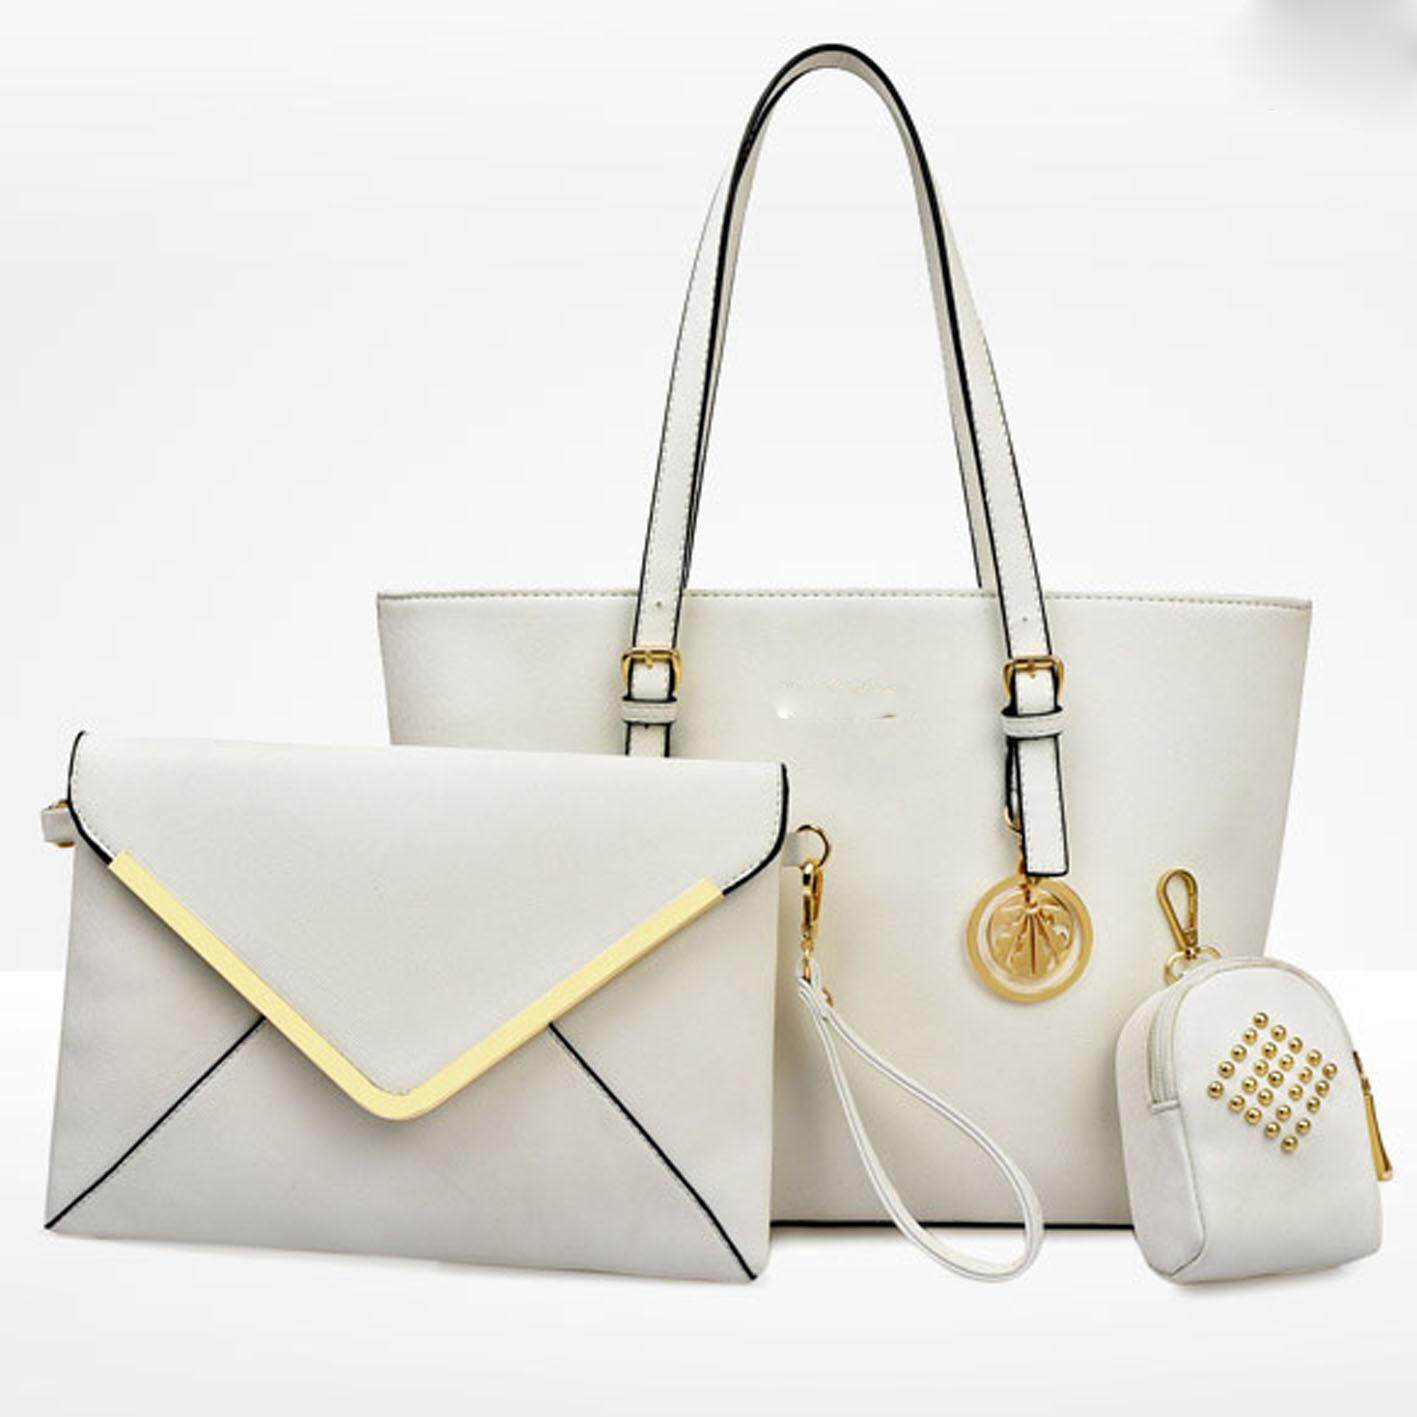 Lulumono PU Leather 3 in1 Tote Dinner Clutch Bag